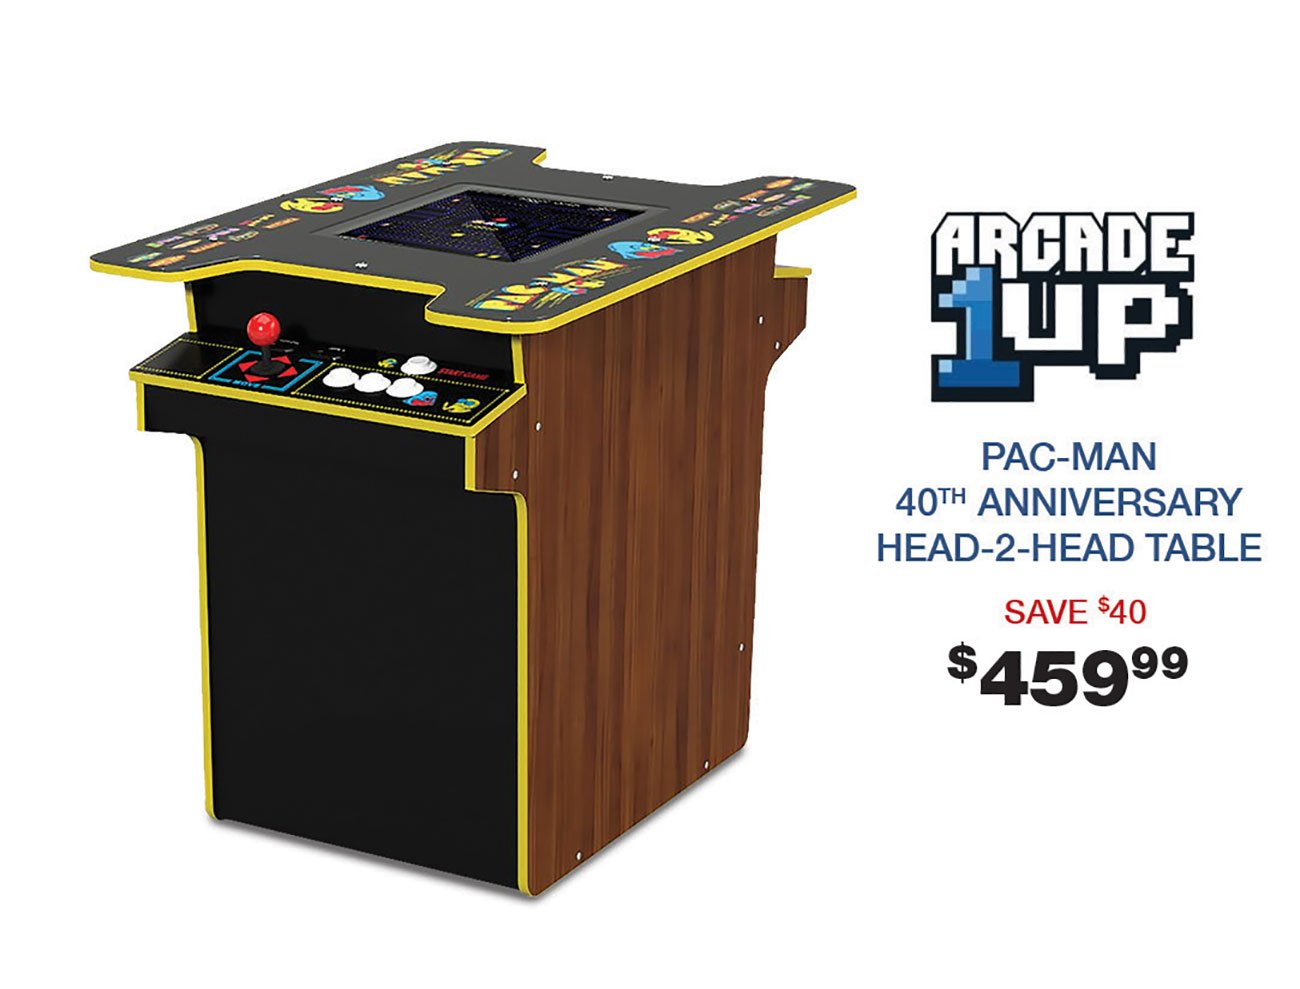 Arcade-1UP-Pacman-Head-To-Head-Table